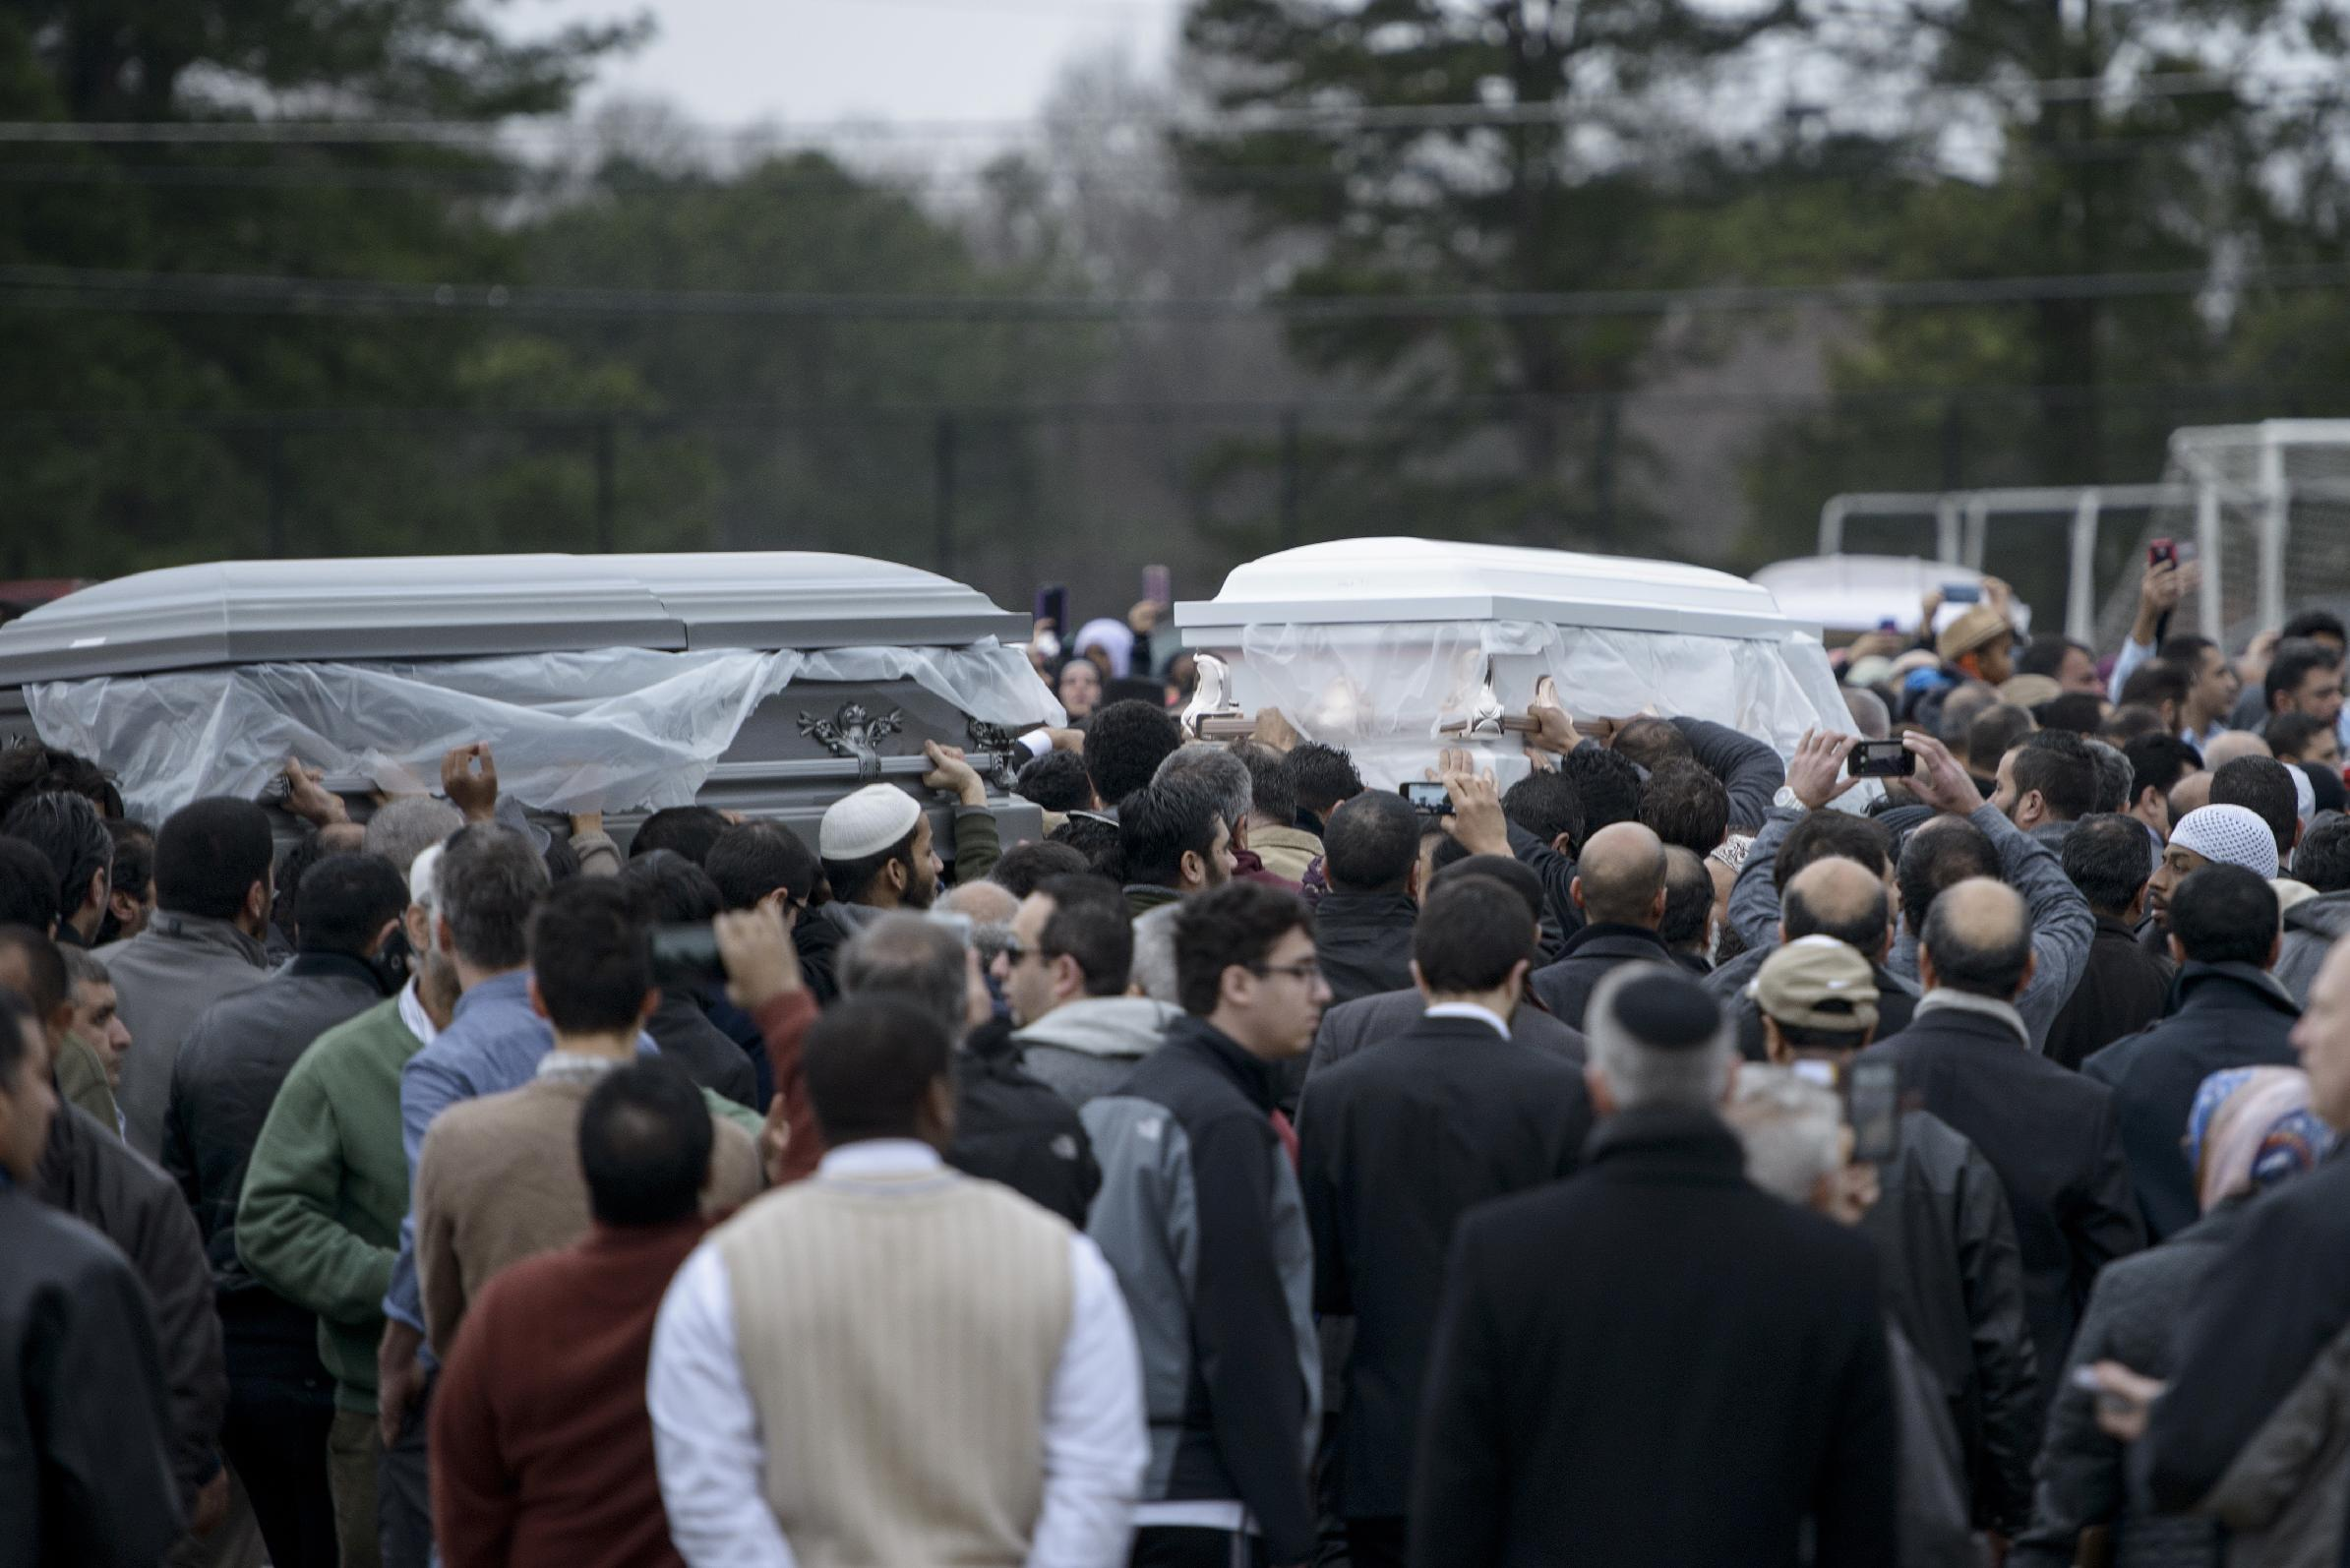 The remains of shooting victims are carried away after a service in a soccer field near the Islamic Association of Raleigh February 12, 2015, in Raleigh, North Carolina (AFP Photo/Brendan Smialowski)